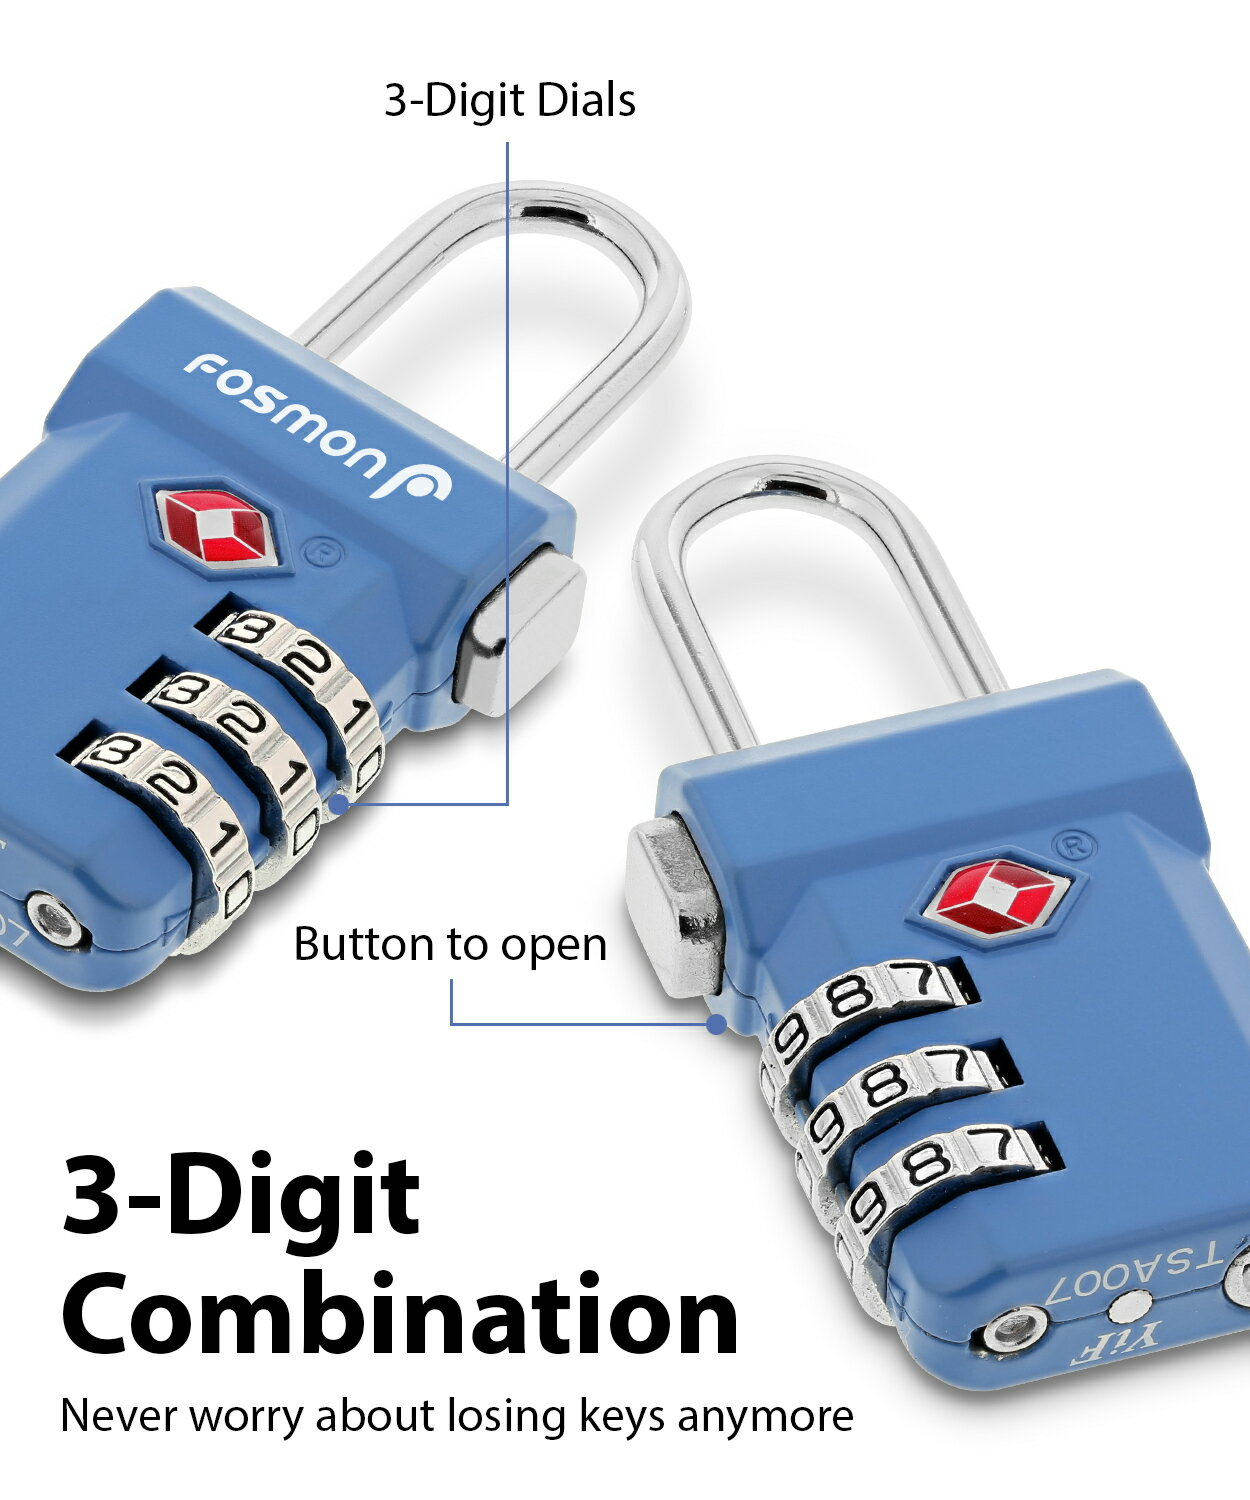 Fosmon Open Alert Indicator TSA Approved 3 Digit Combination Luggage Lock -  Black, Blue, Pink, and Silver - 4 Pack